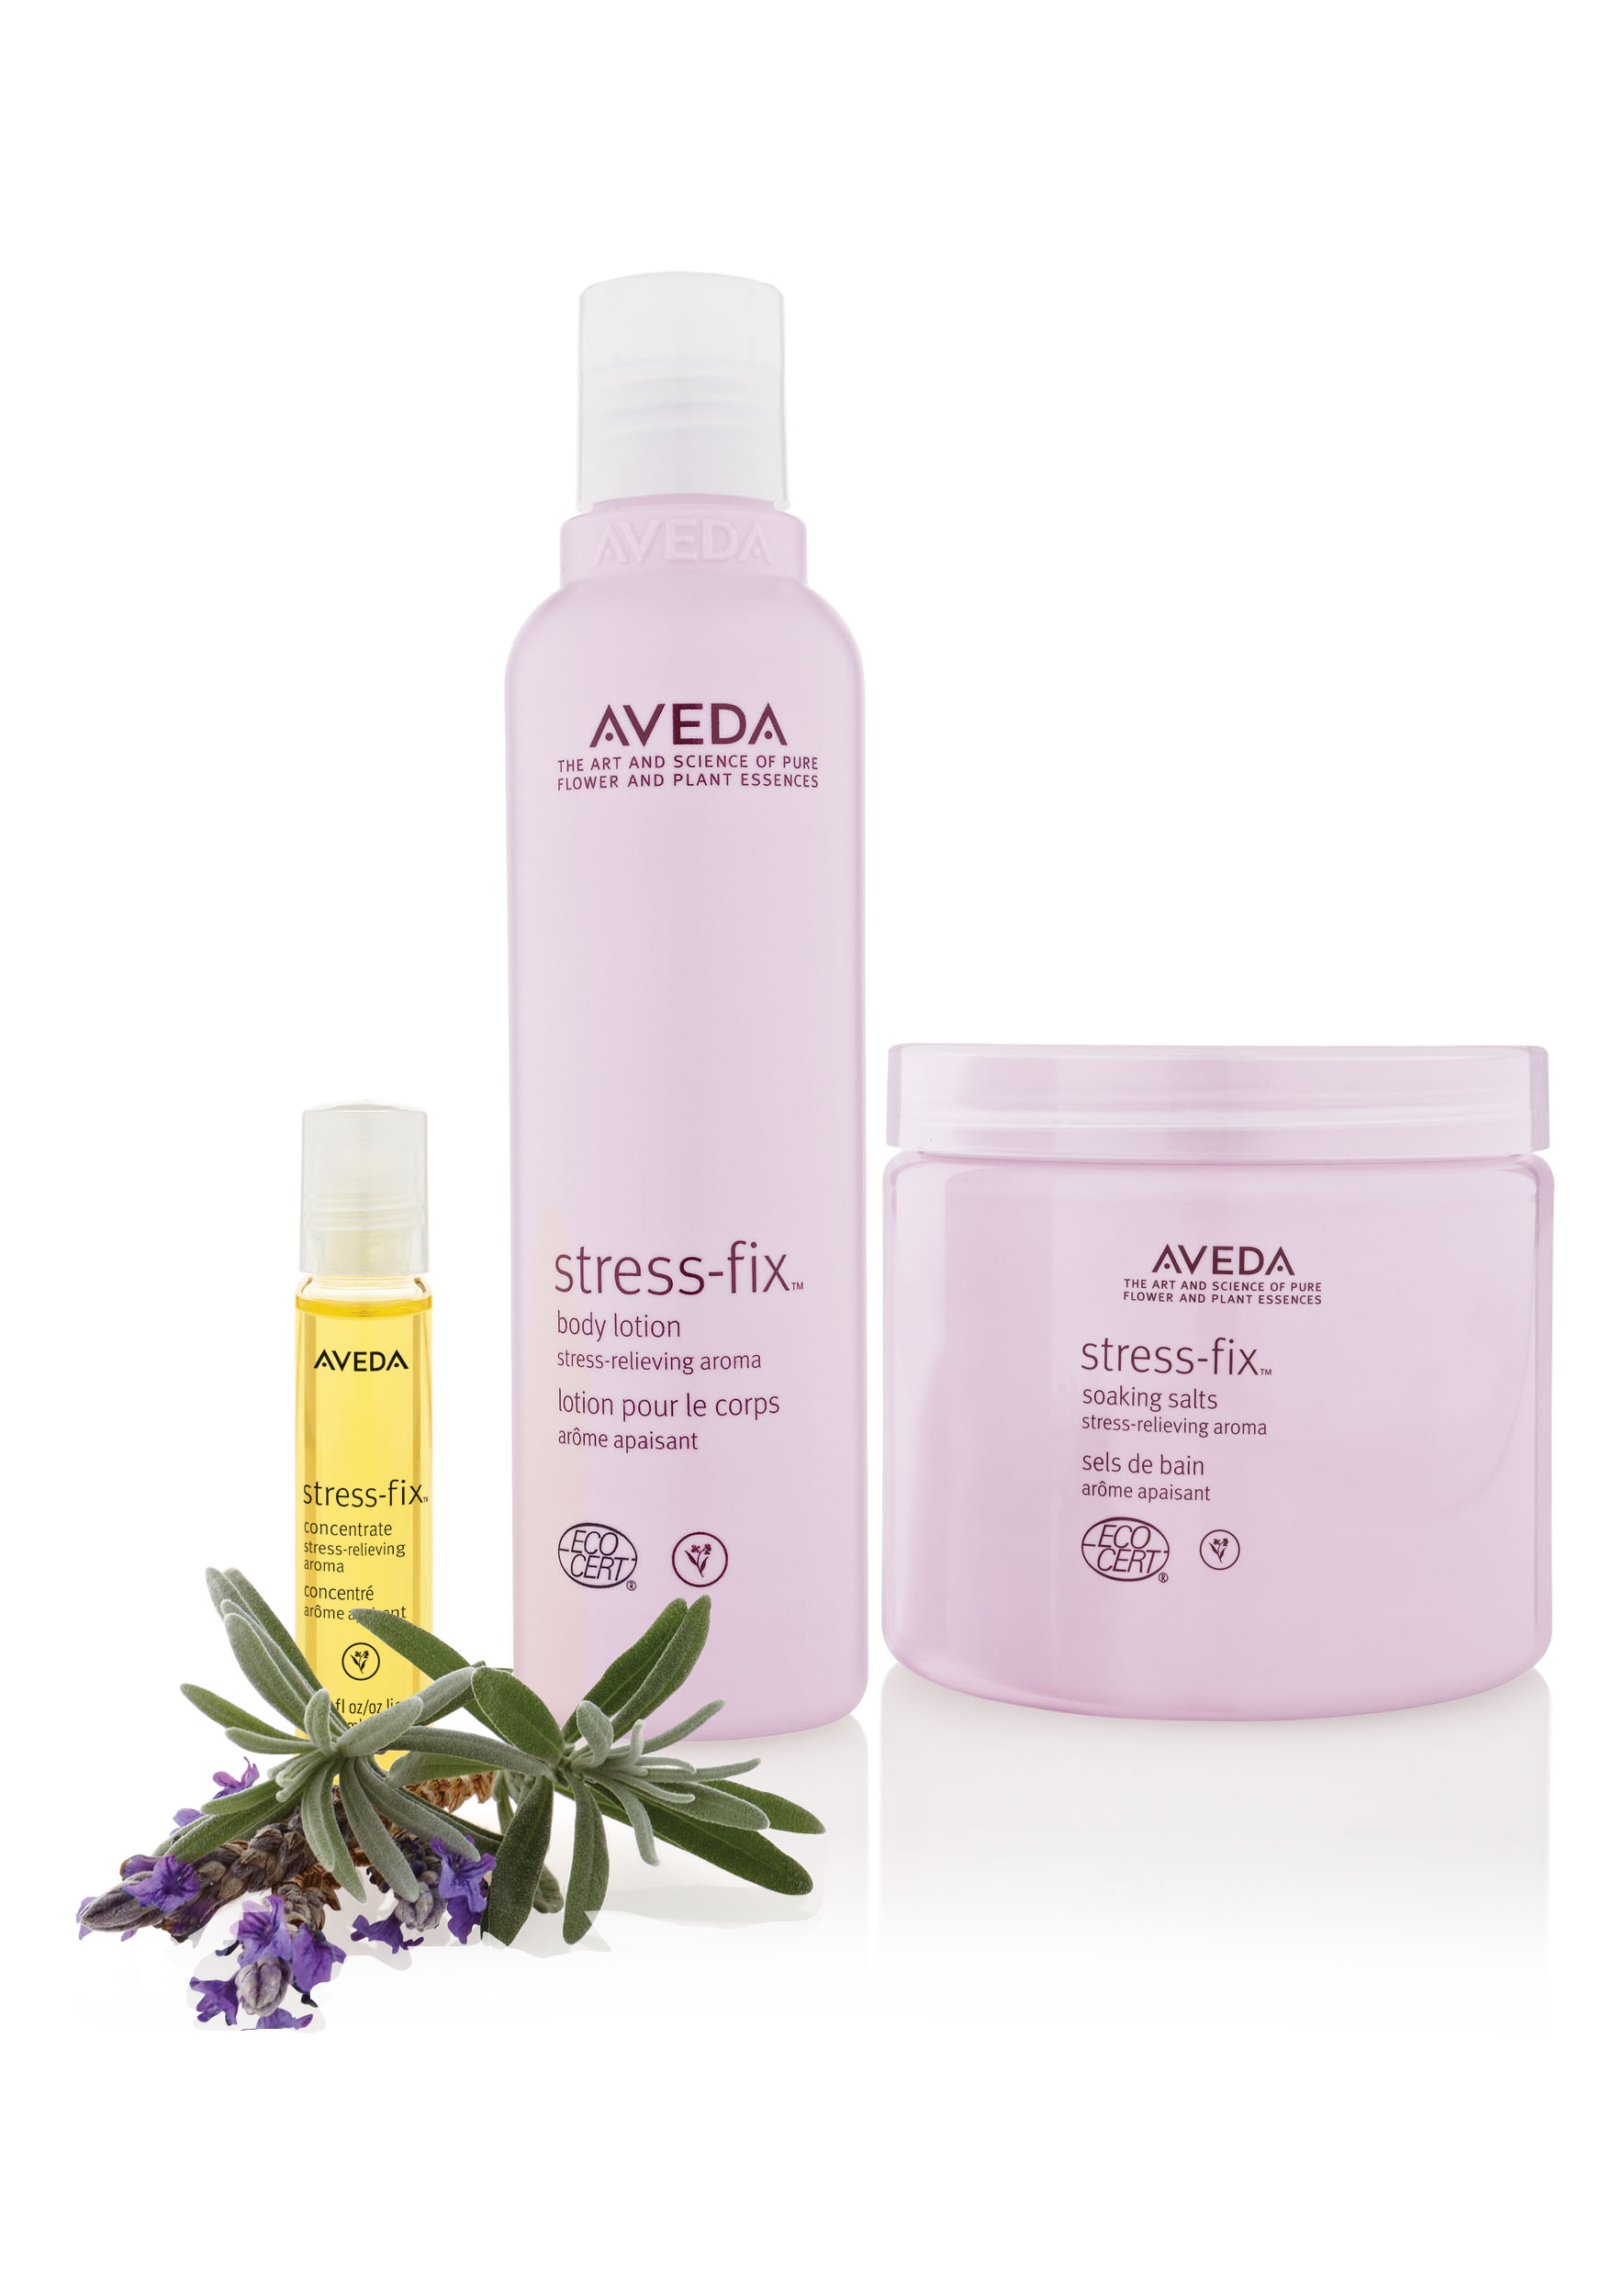 Aveda stress-fix™ @ IINN Sustainable Beauty